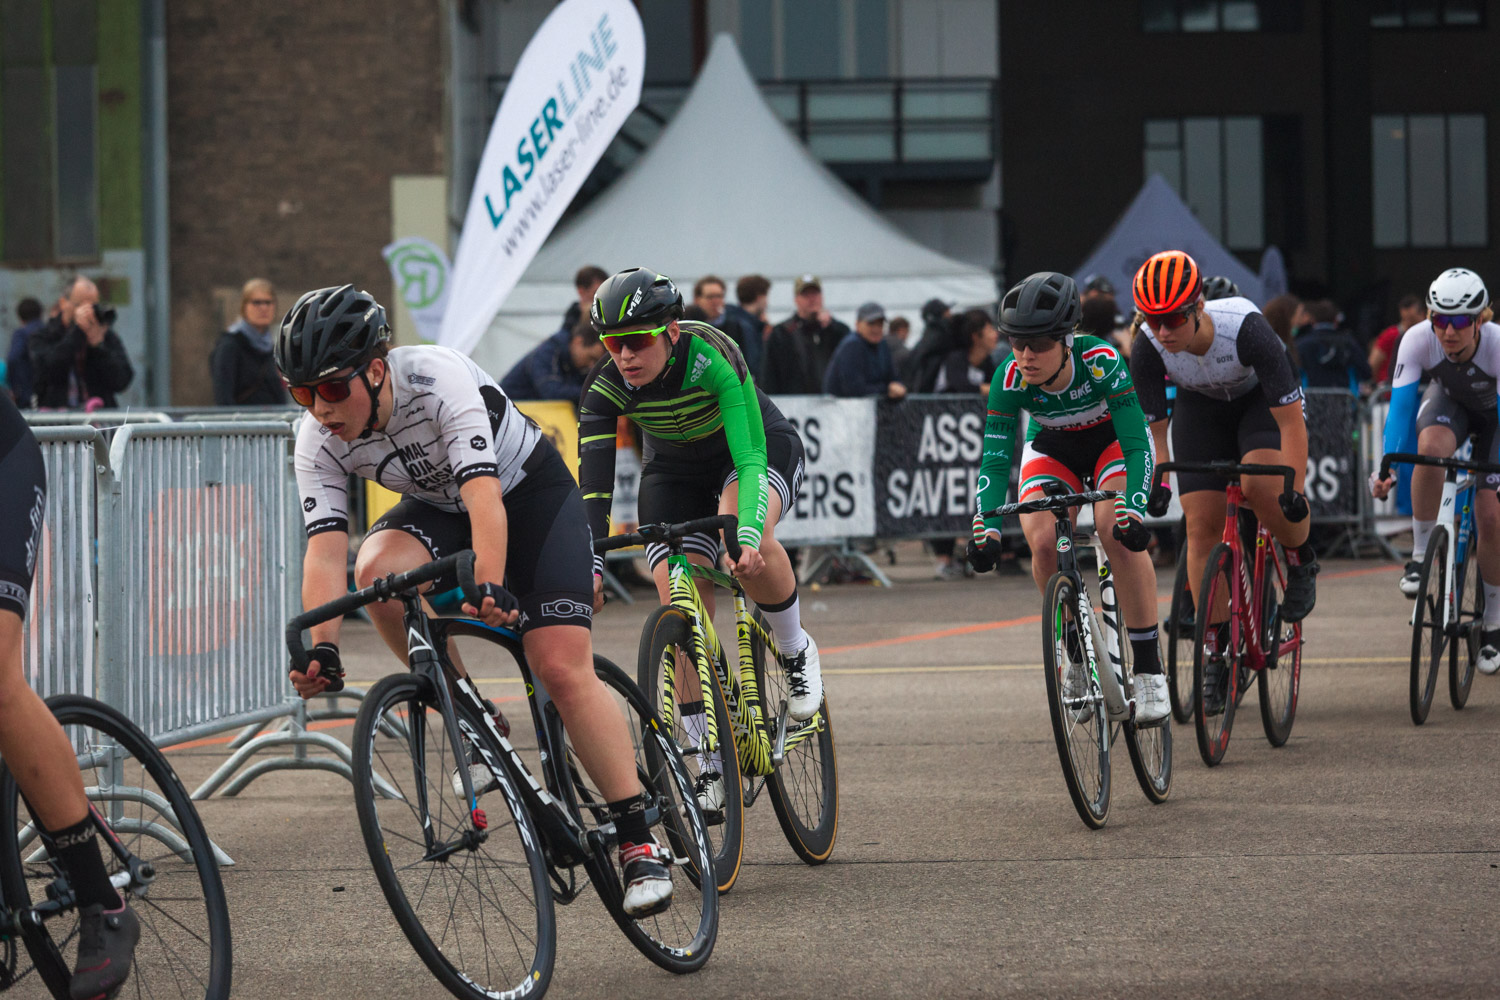 8barcrit 2018 women fixed gear race 14 - Fast, Faster, 8bar crit 2018 - the race review!